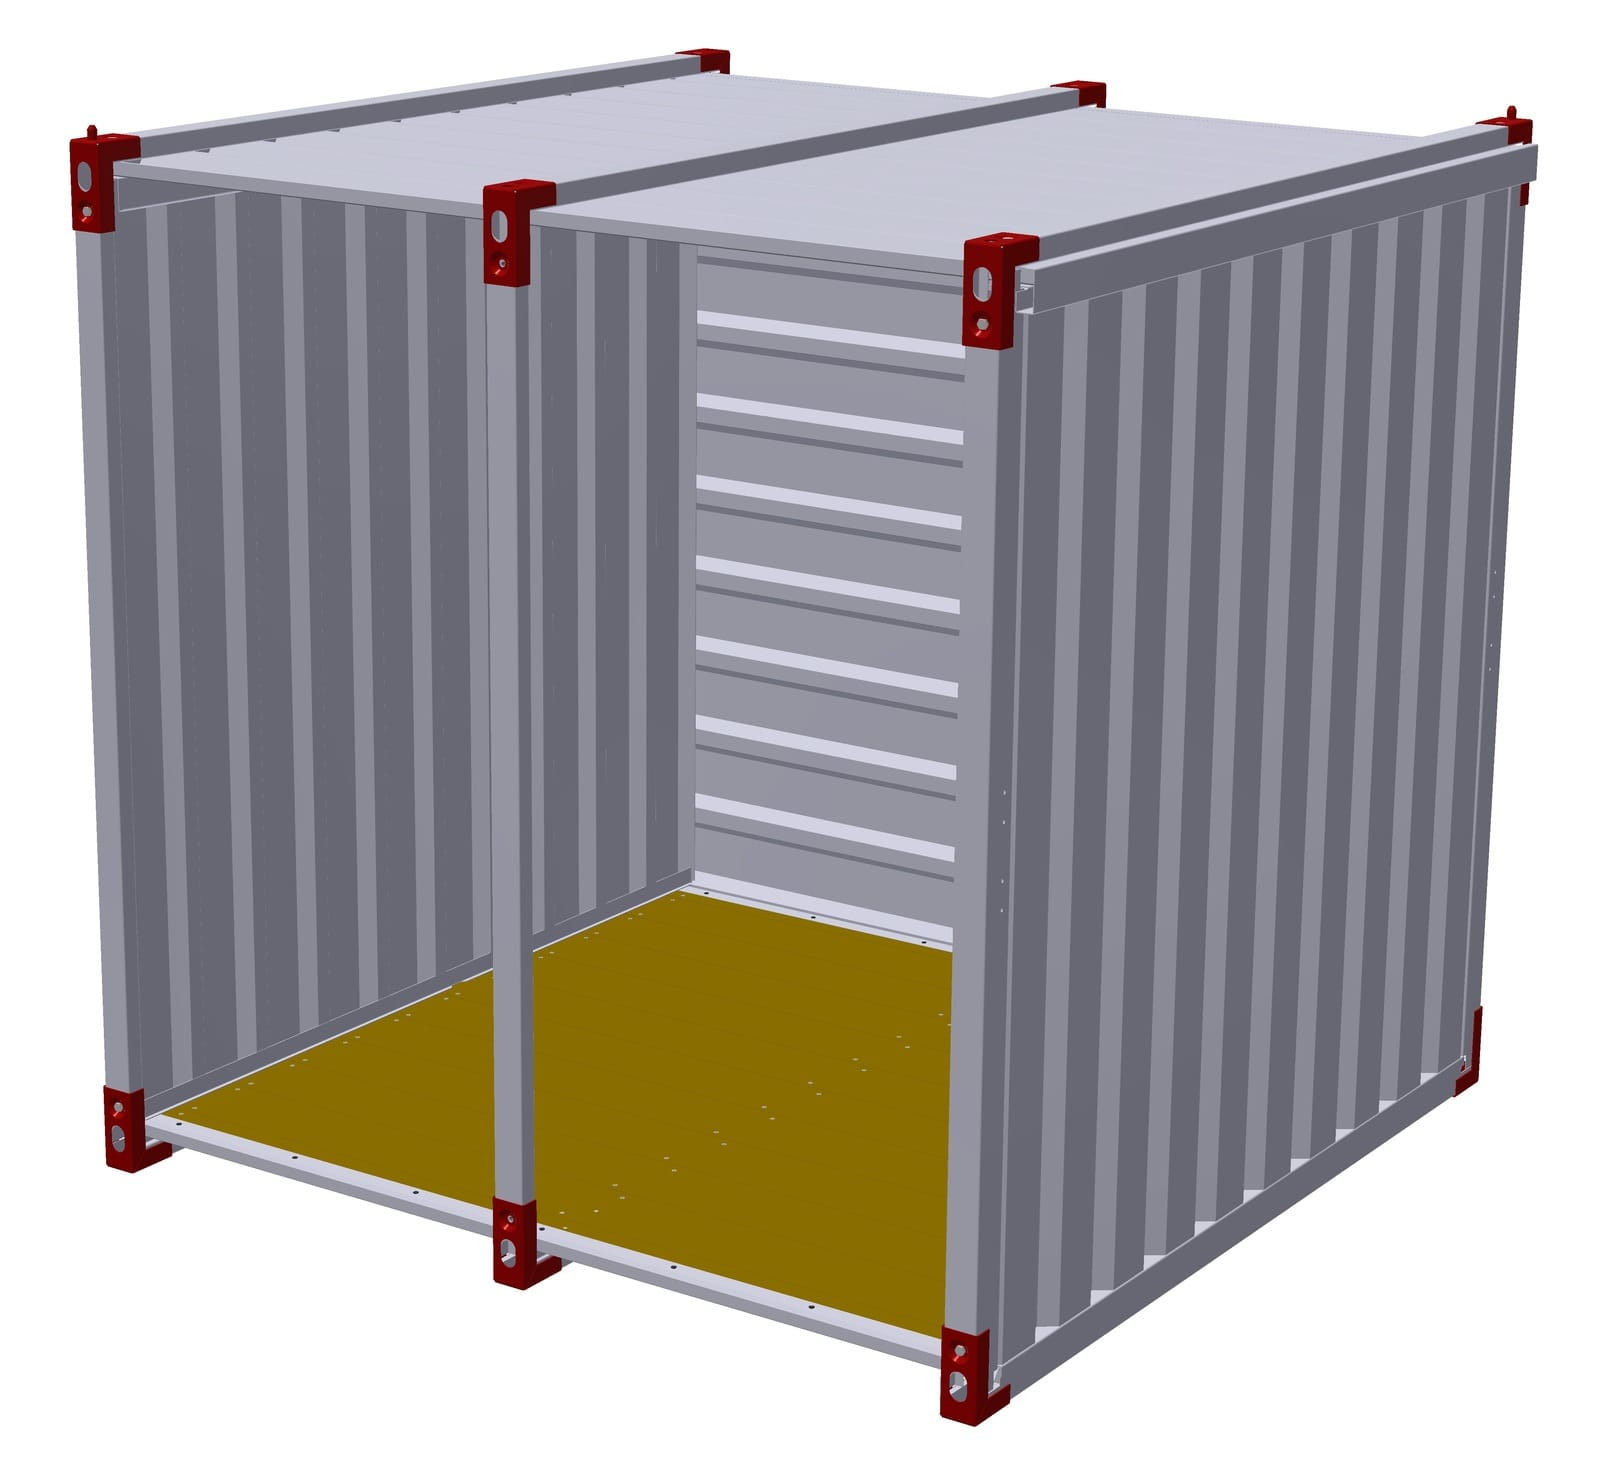 2.25m Storage Shed with Open Front